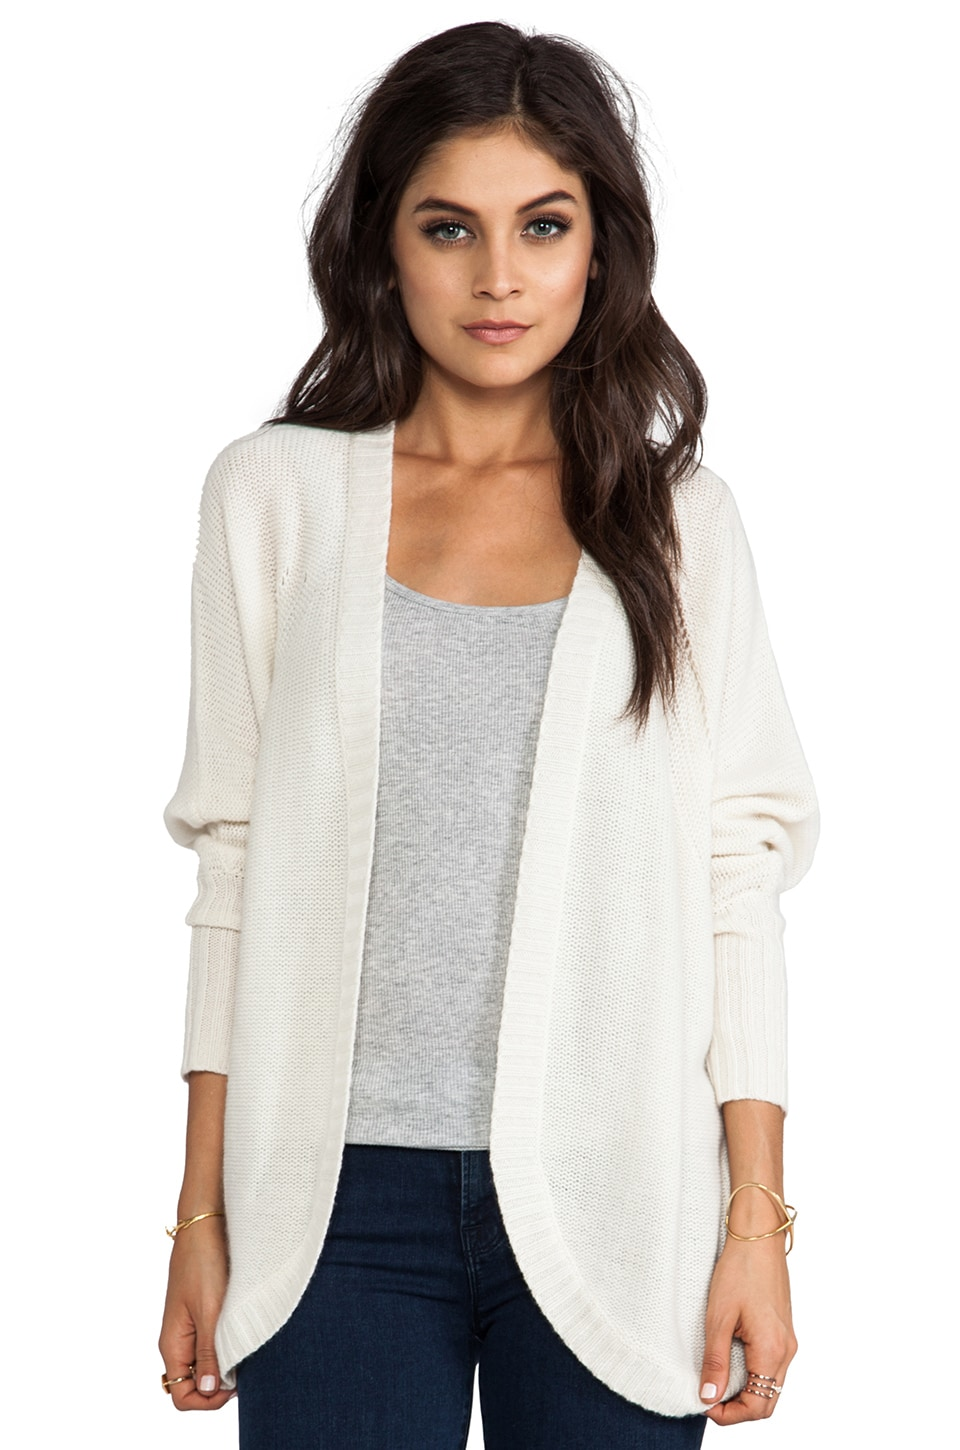 Autumn Cashmere Open Cocoon Cardigan in Milk